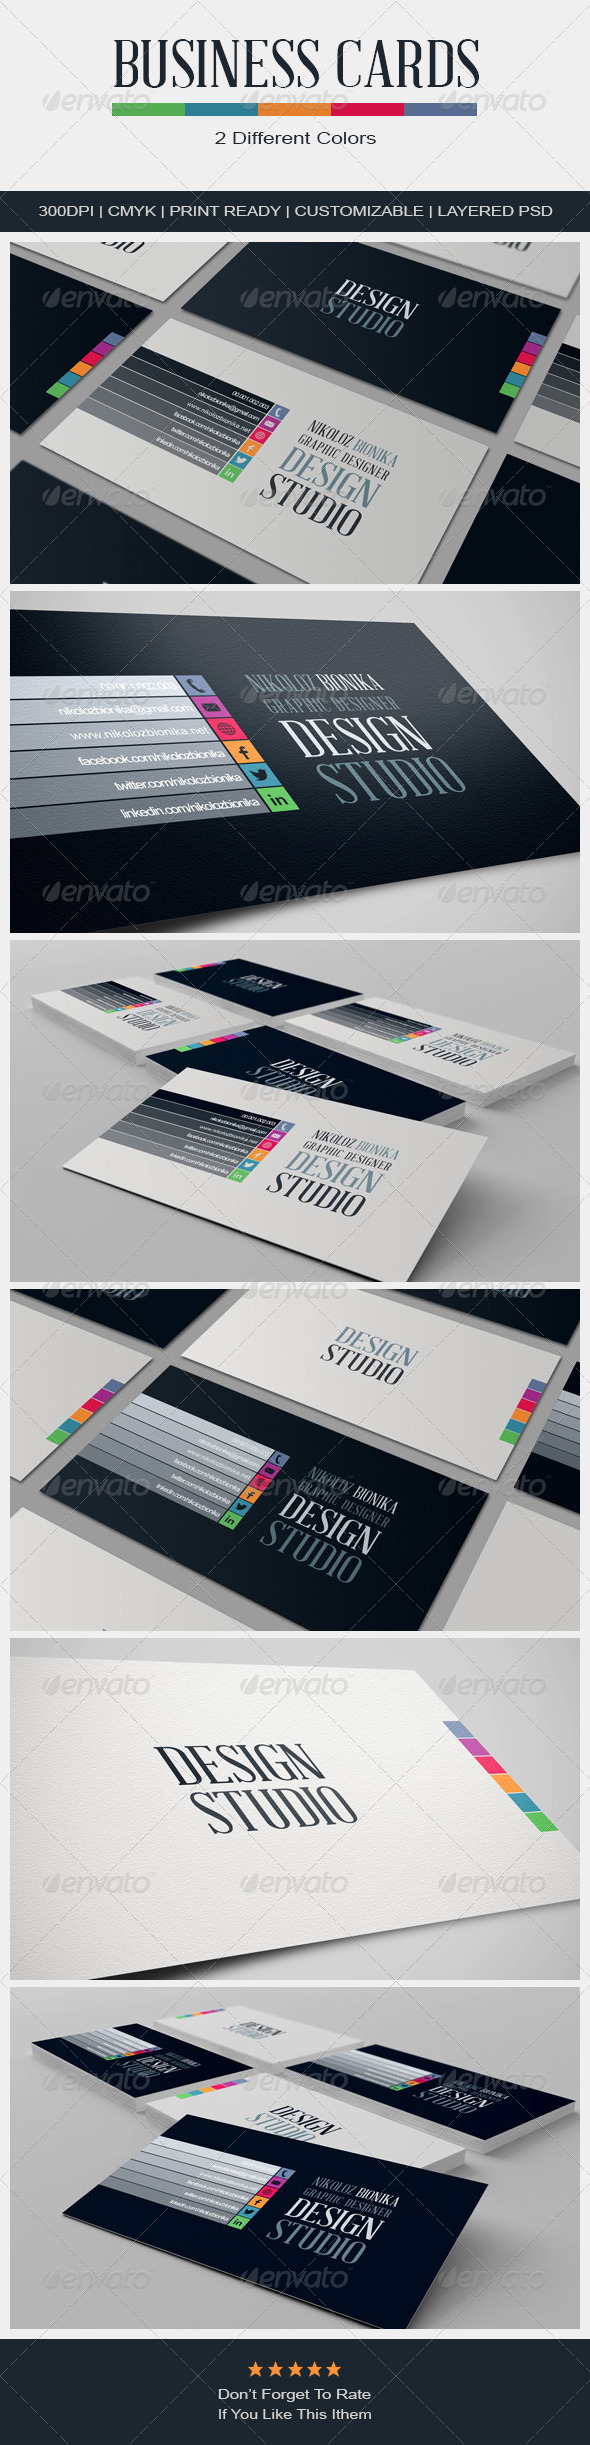 GraphicRiver Stylish Business Cards 4595090